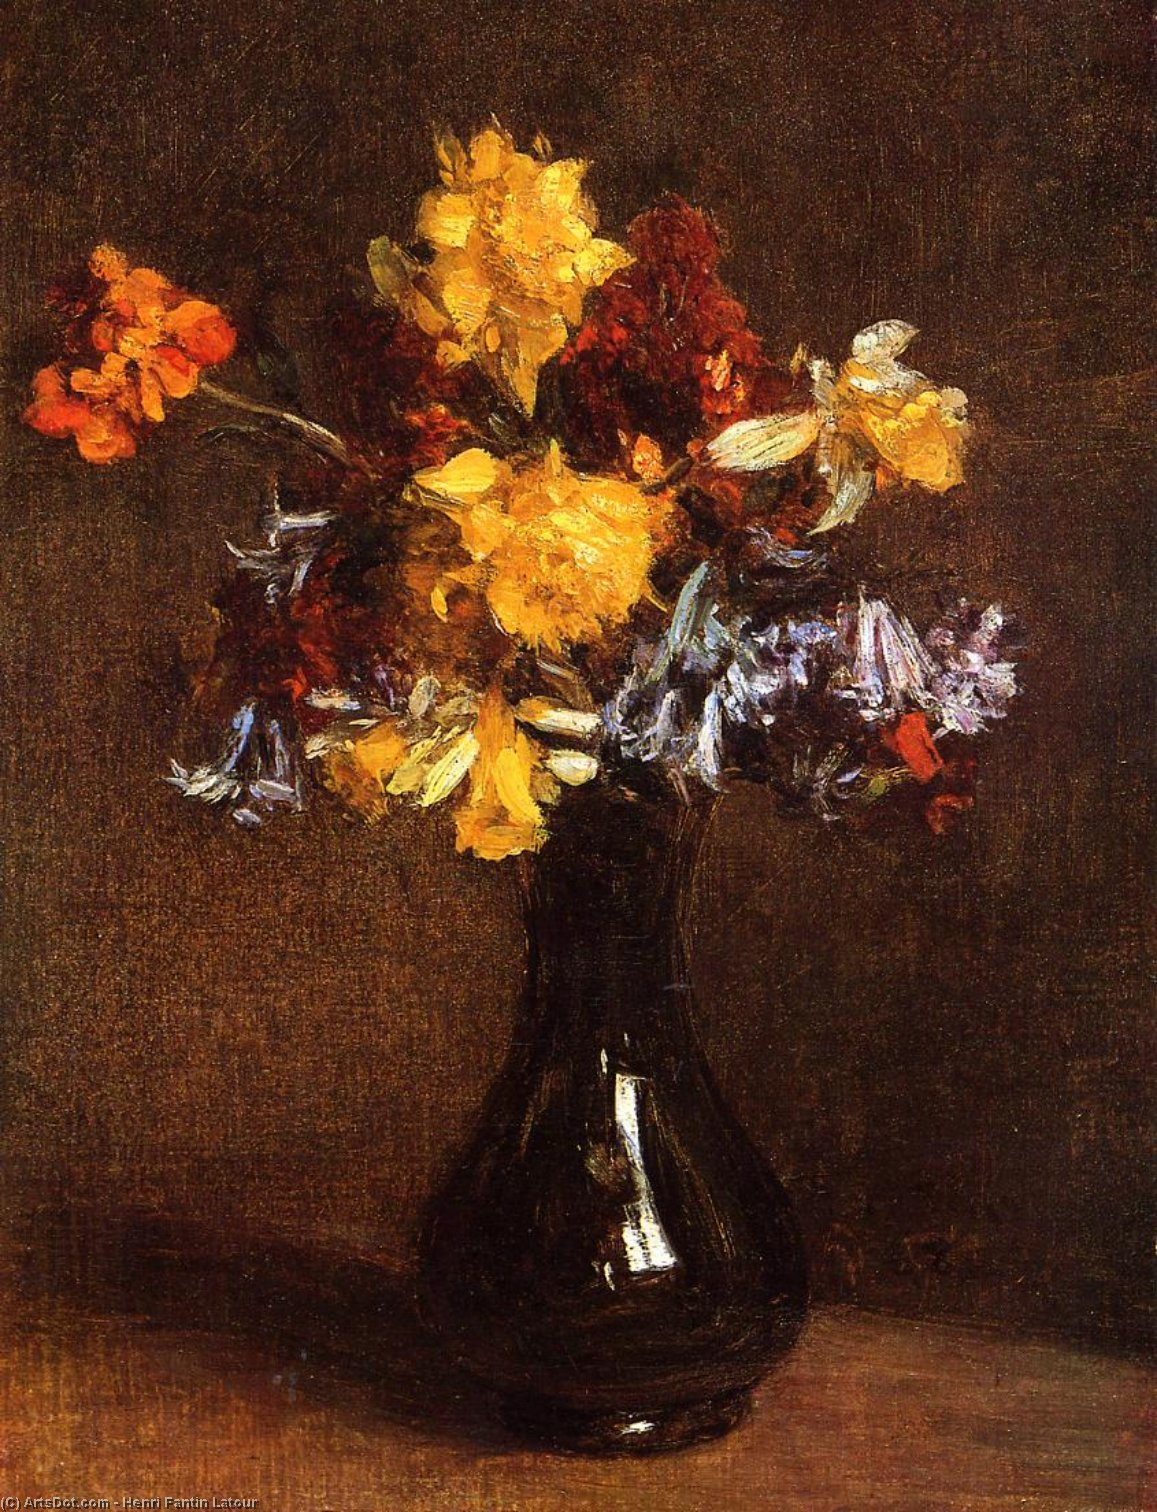 Vase of Flowers, Oil by Henri Fantin Latour (1836-1904, France)